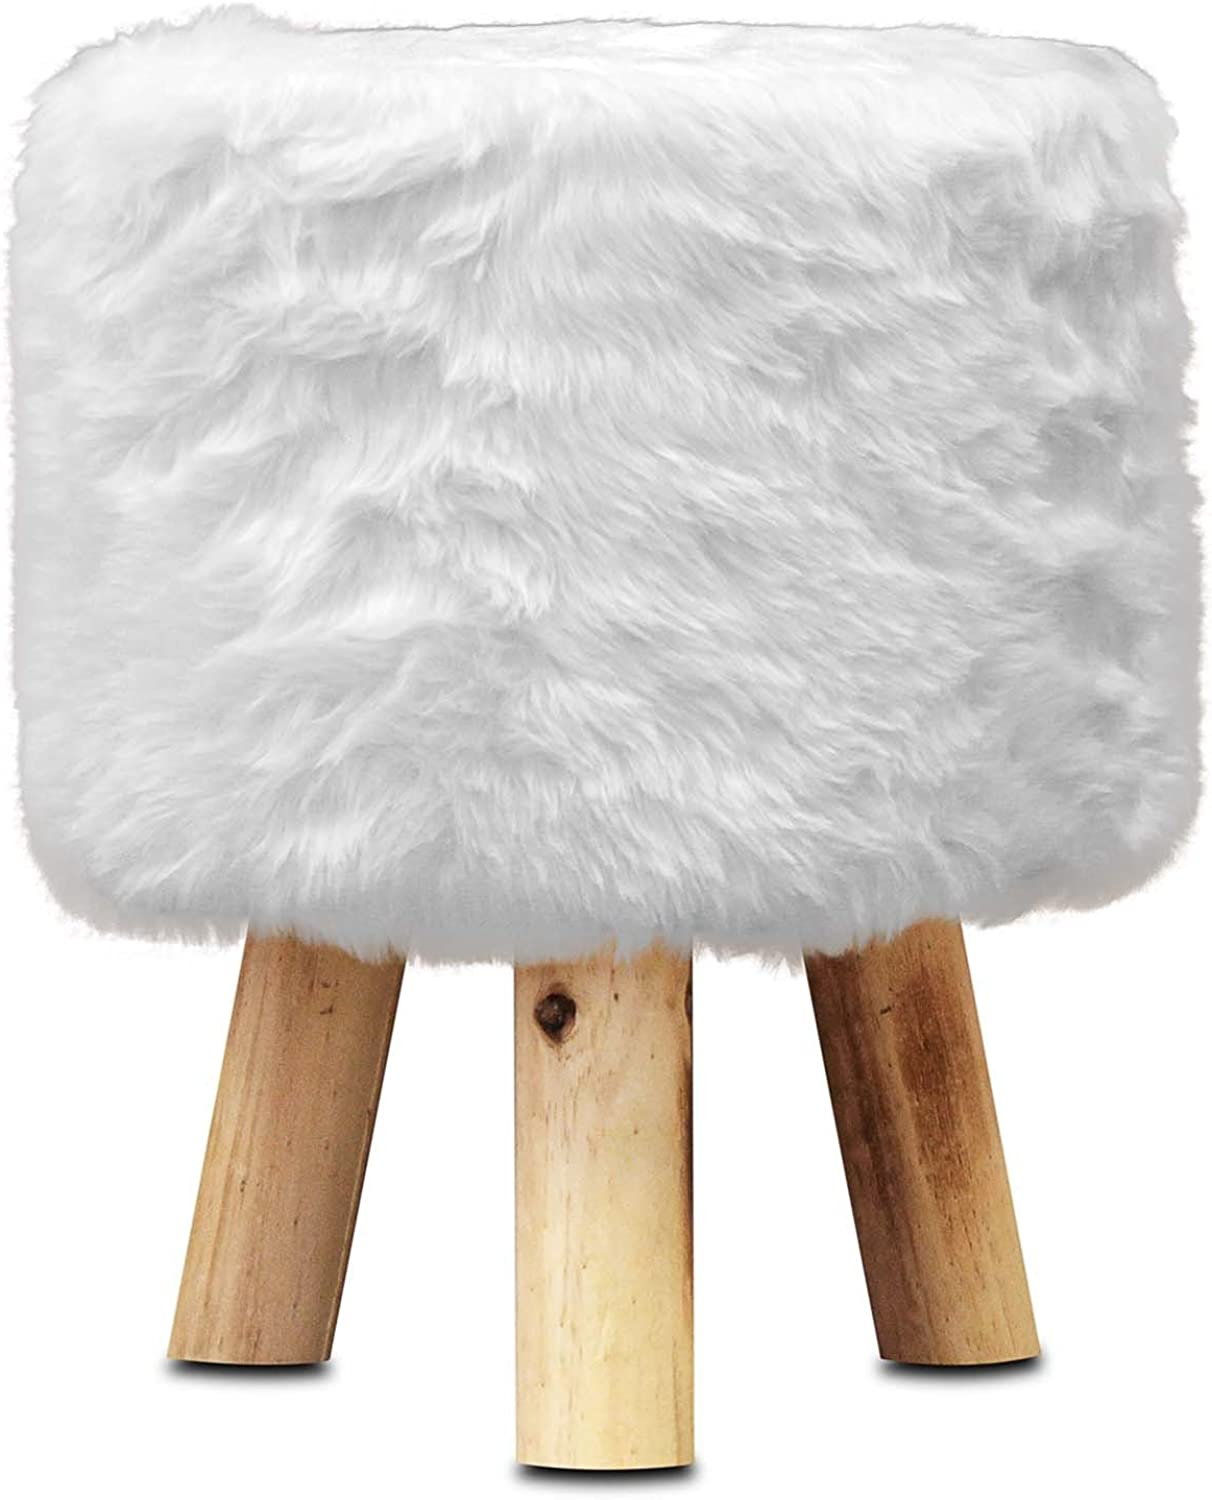 ToCi Haushalt Stool with Fur Cover [White]